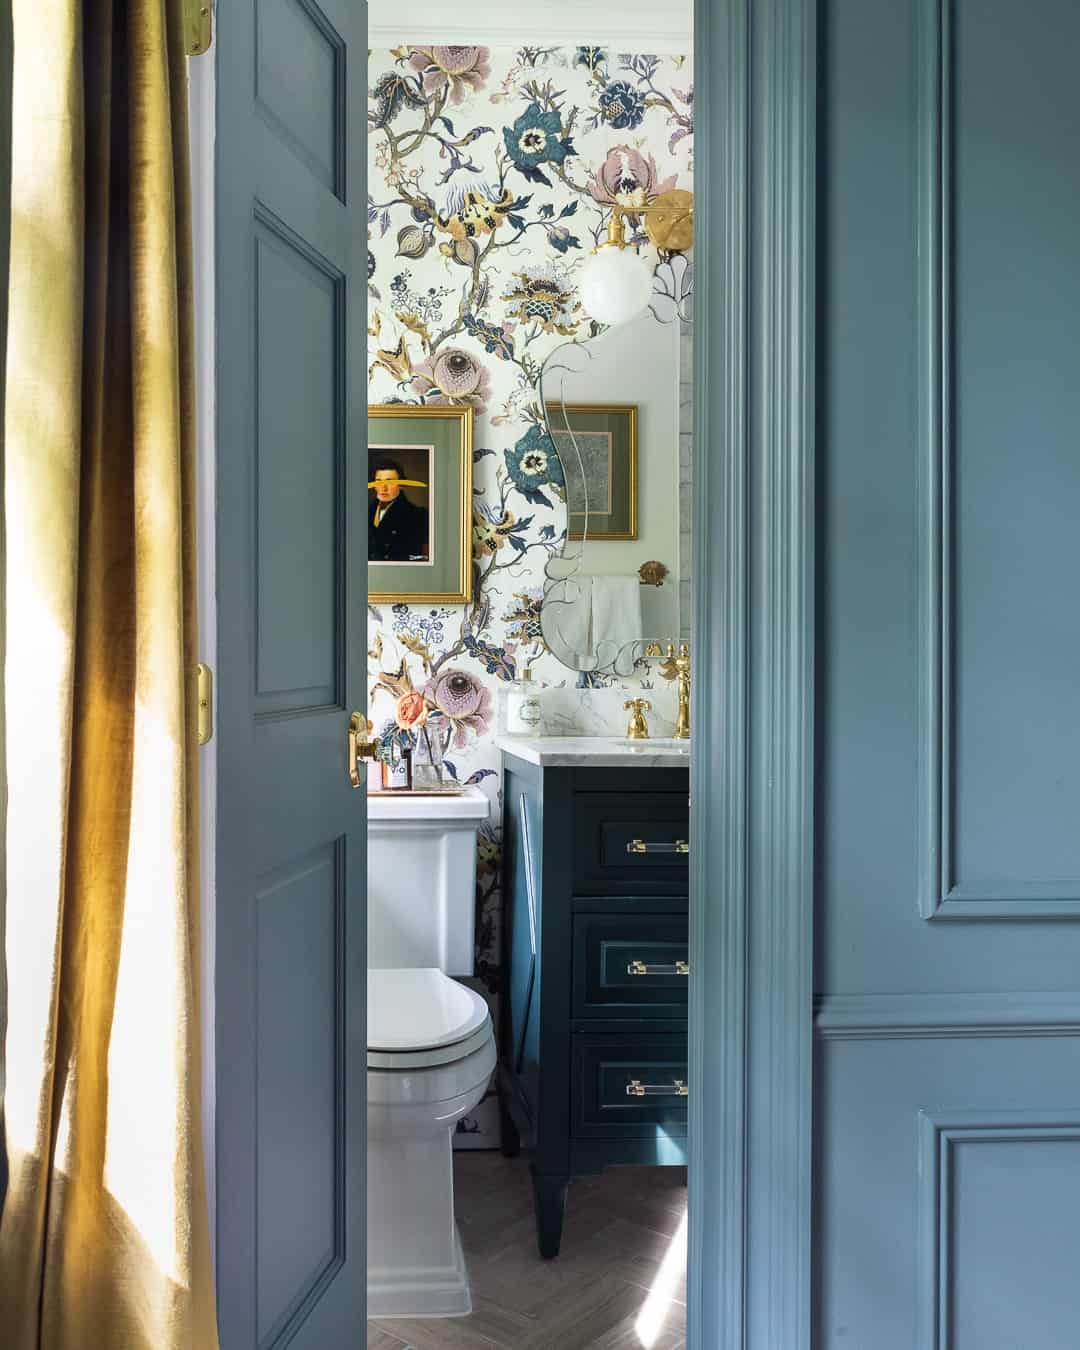 Kiki + Co | A Color Story Inspired by This Beautiful Bathroom